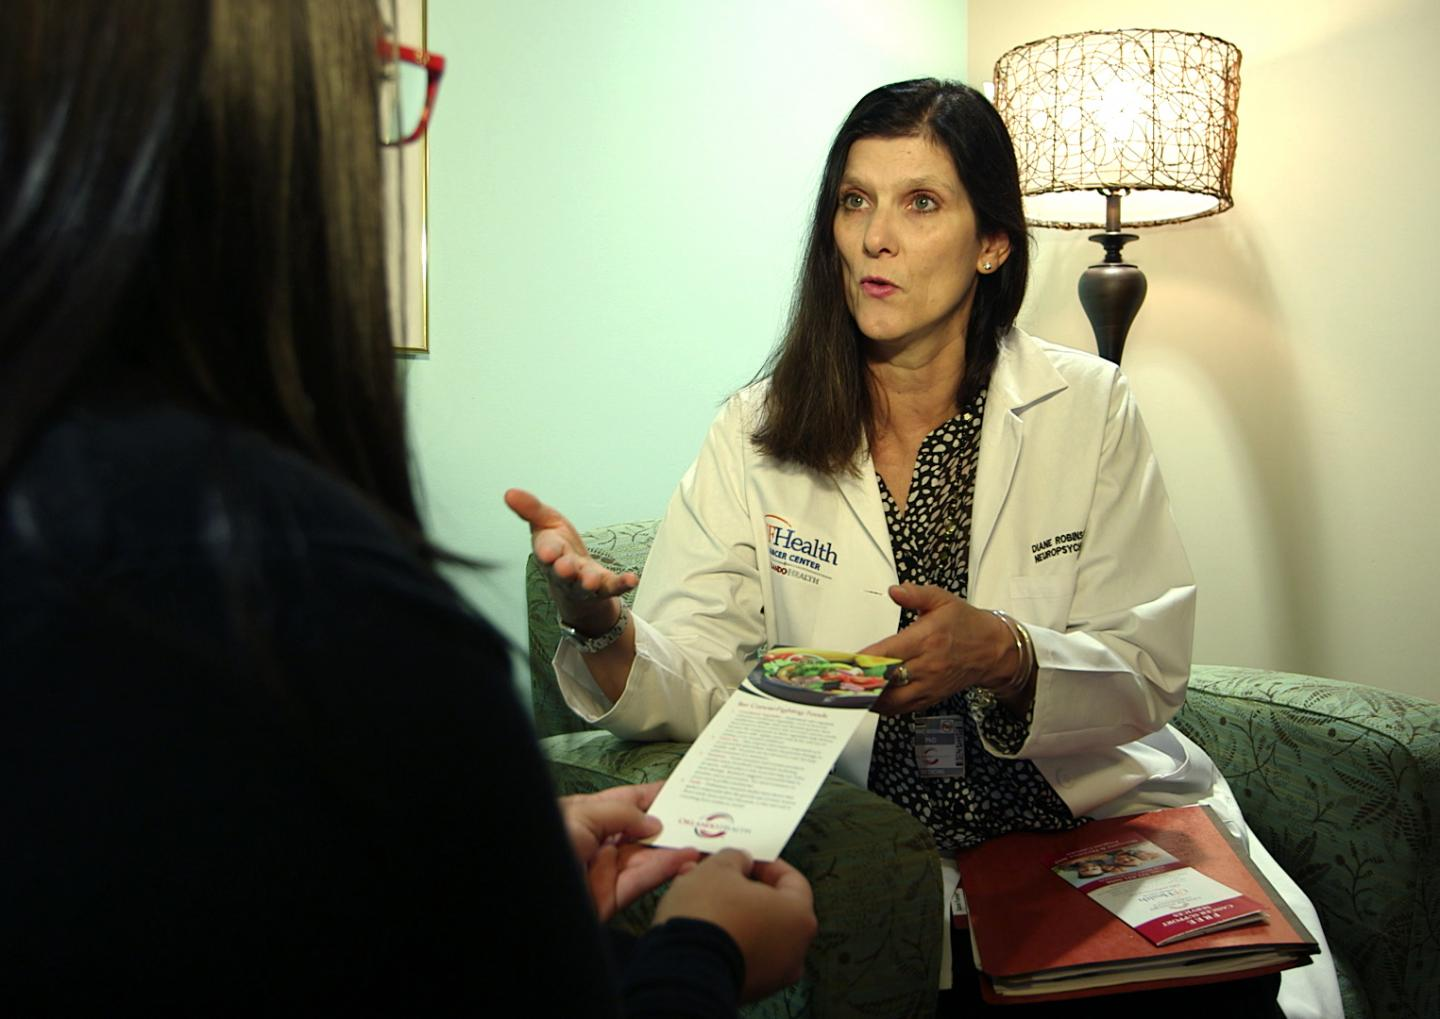 Experts find 90 Percent Discount Key to Weight Loss